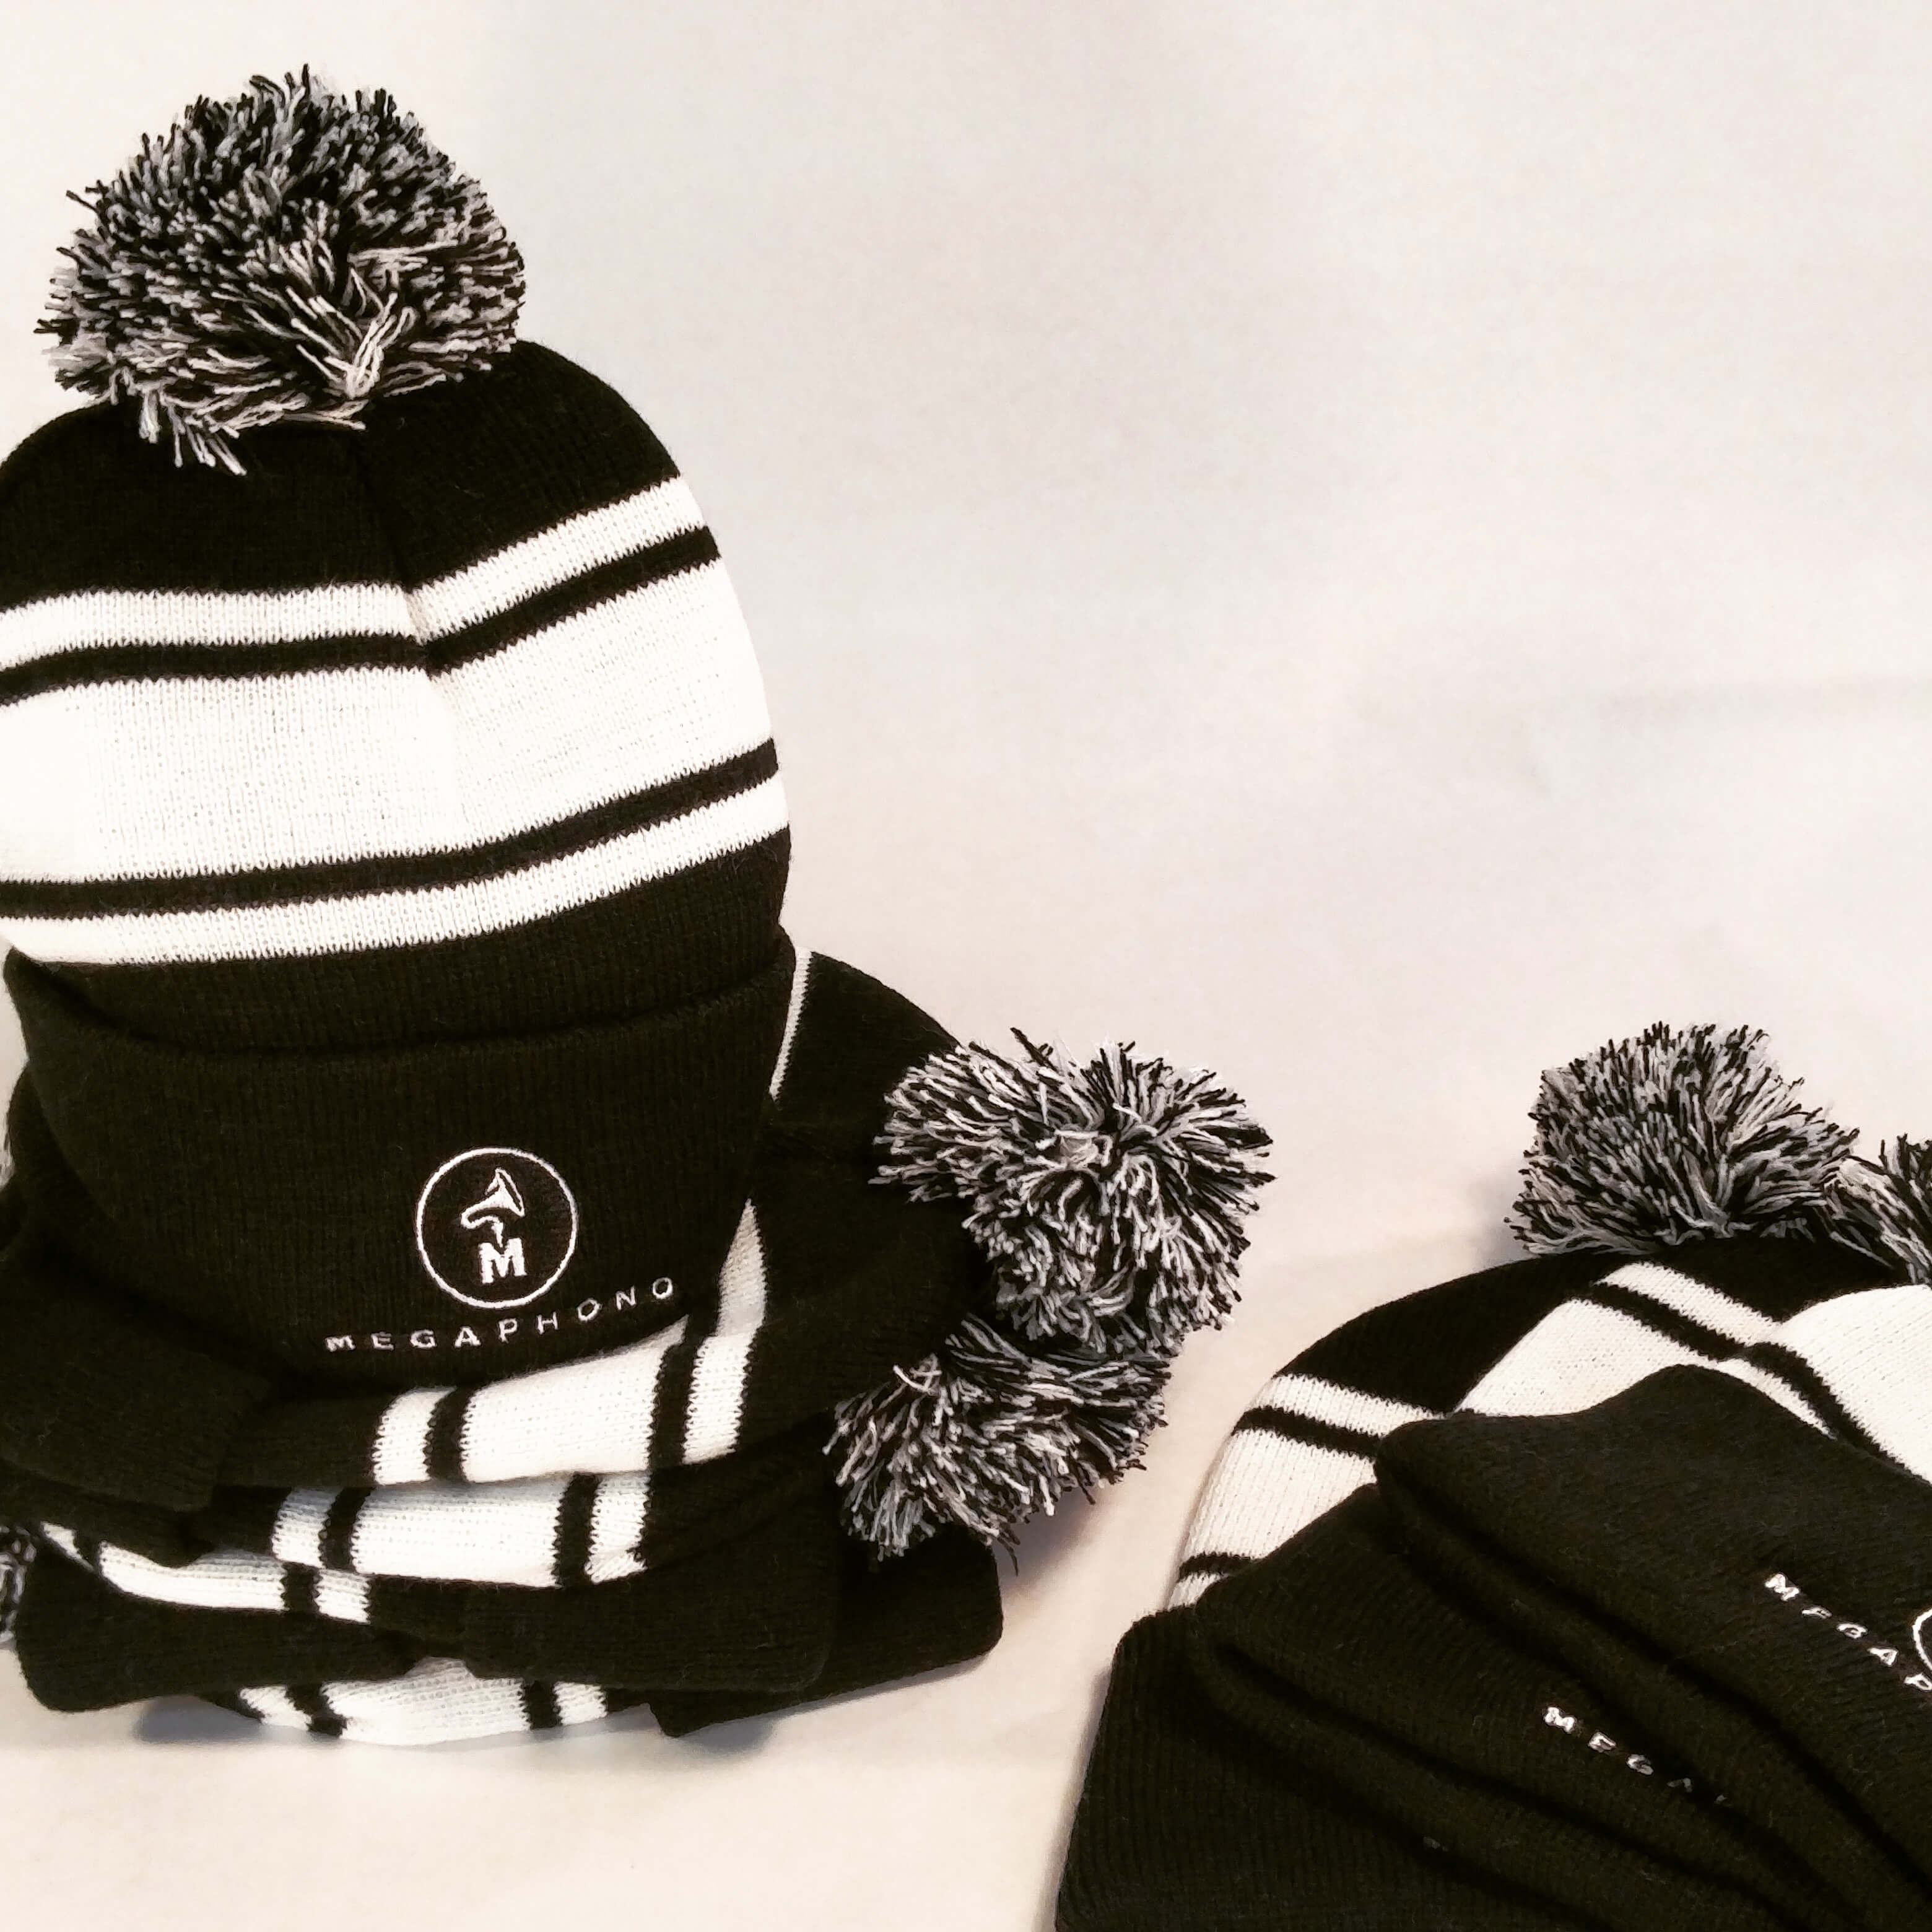 custom tuque, embroidered toque. Swag balck and white winter hat. Beanie. All Things made. Ottawa ontario. Canada. Promotional merchandise.